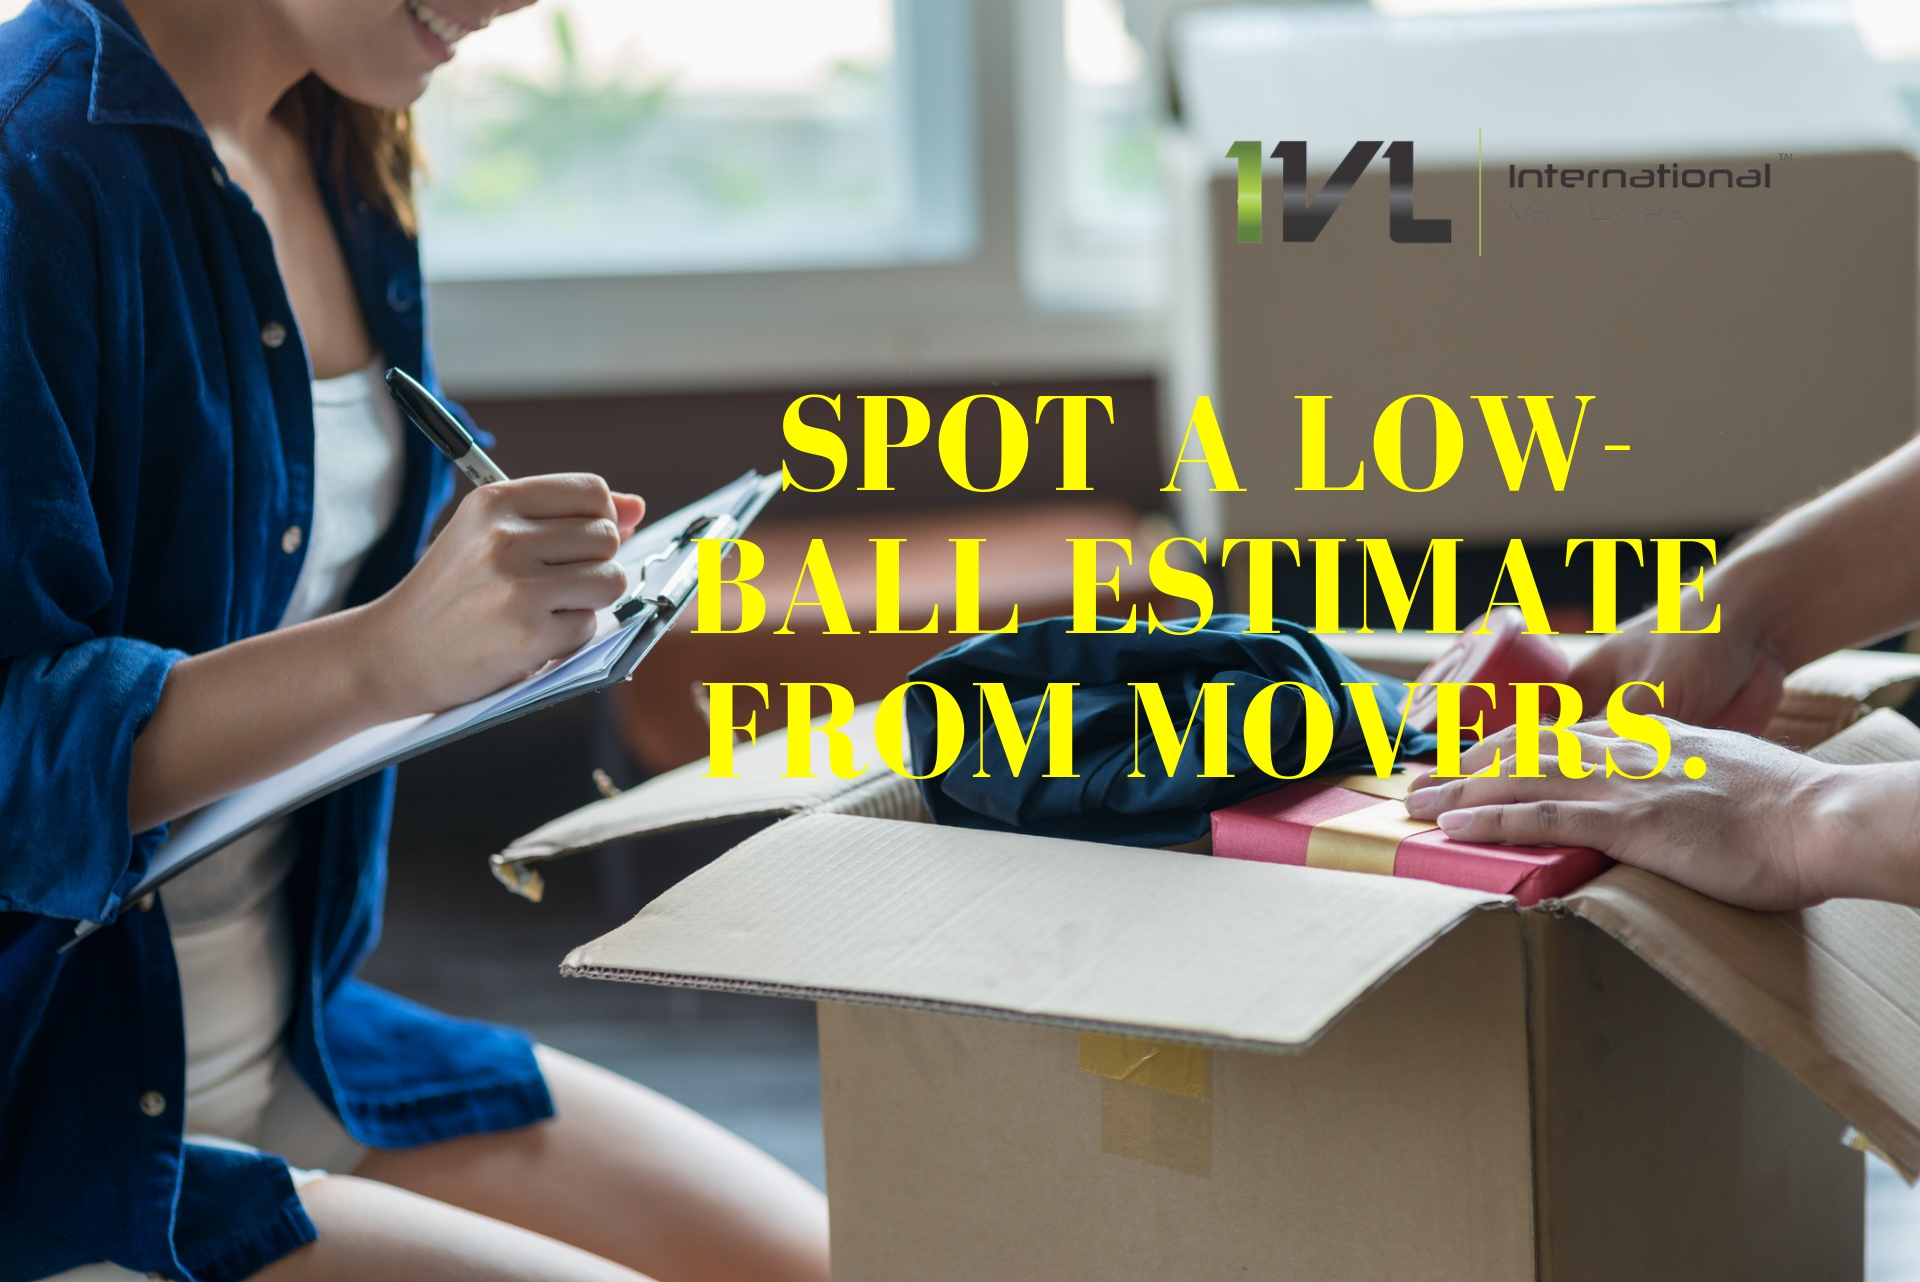 low-ball estimate from movers